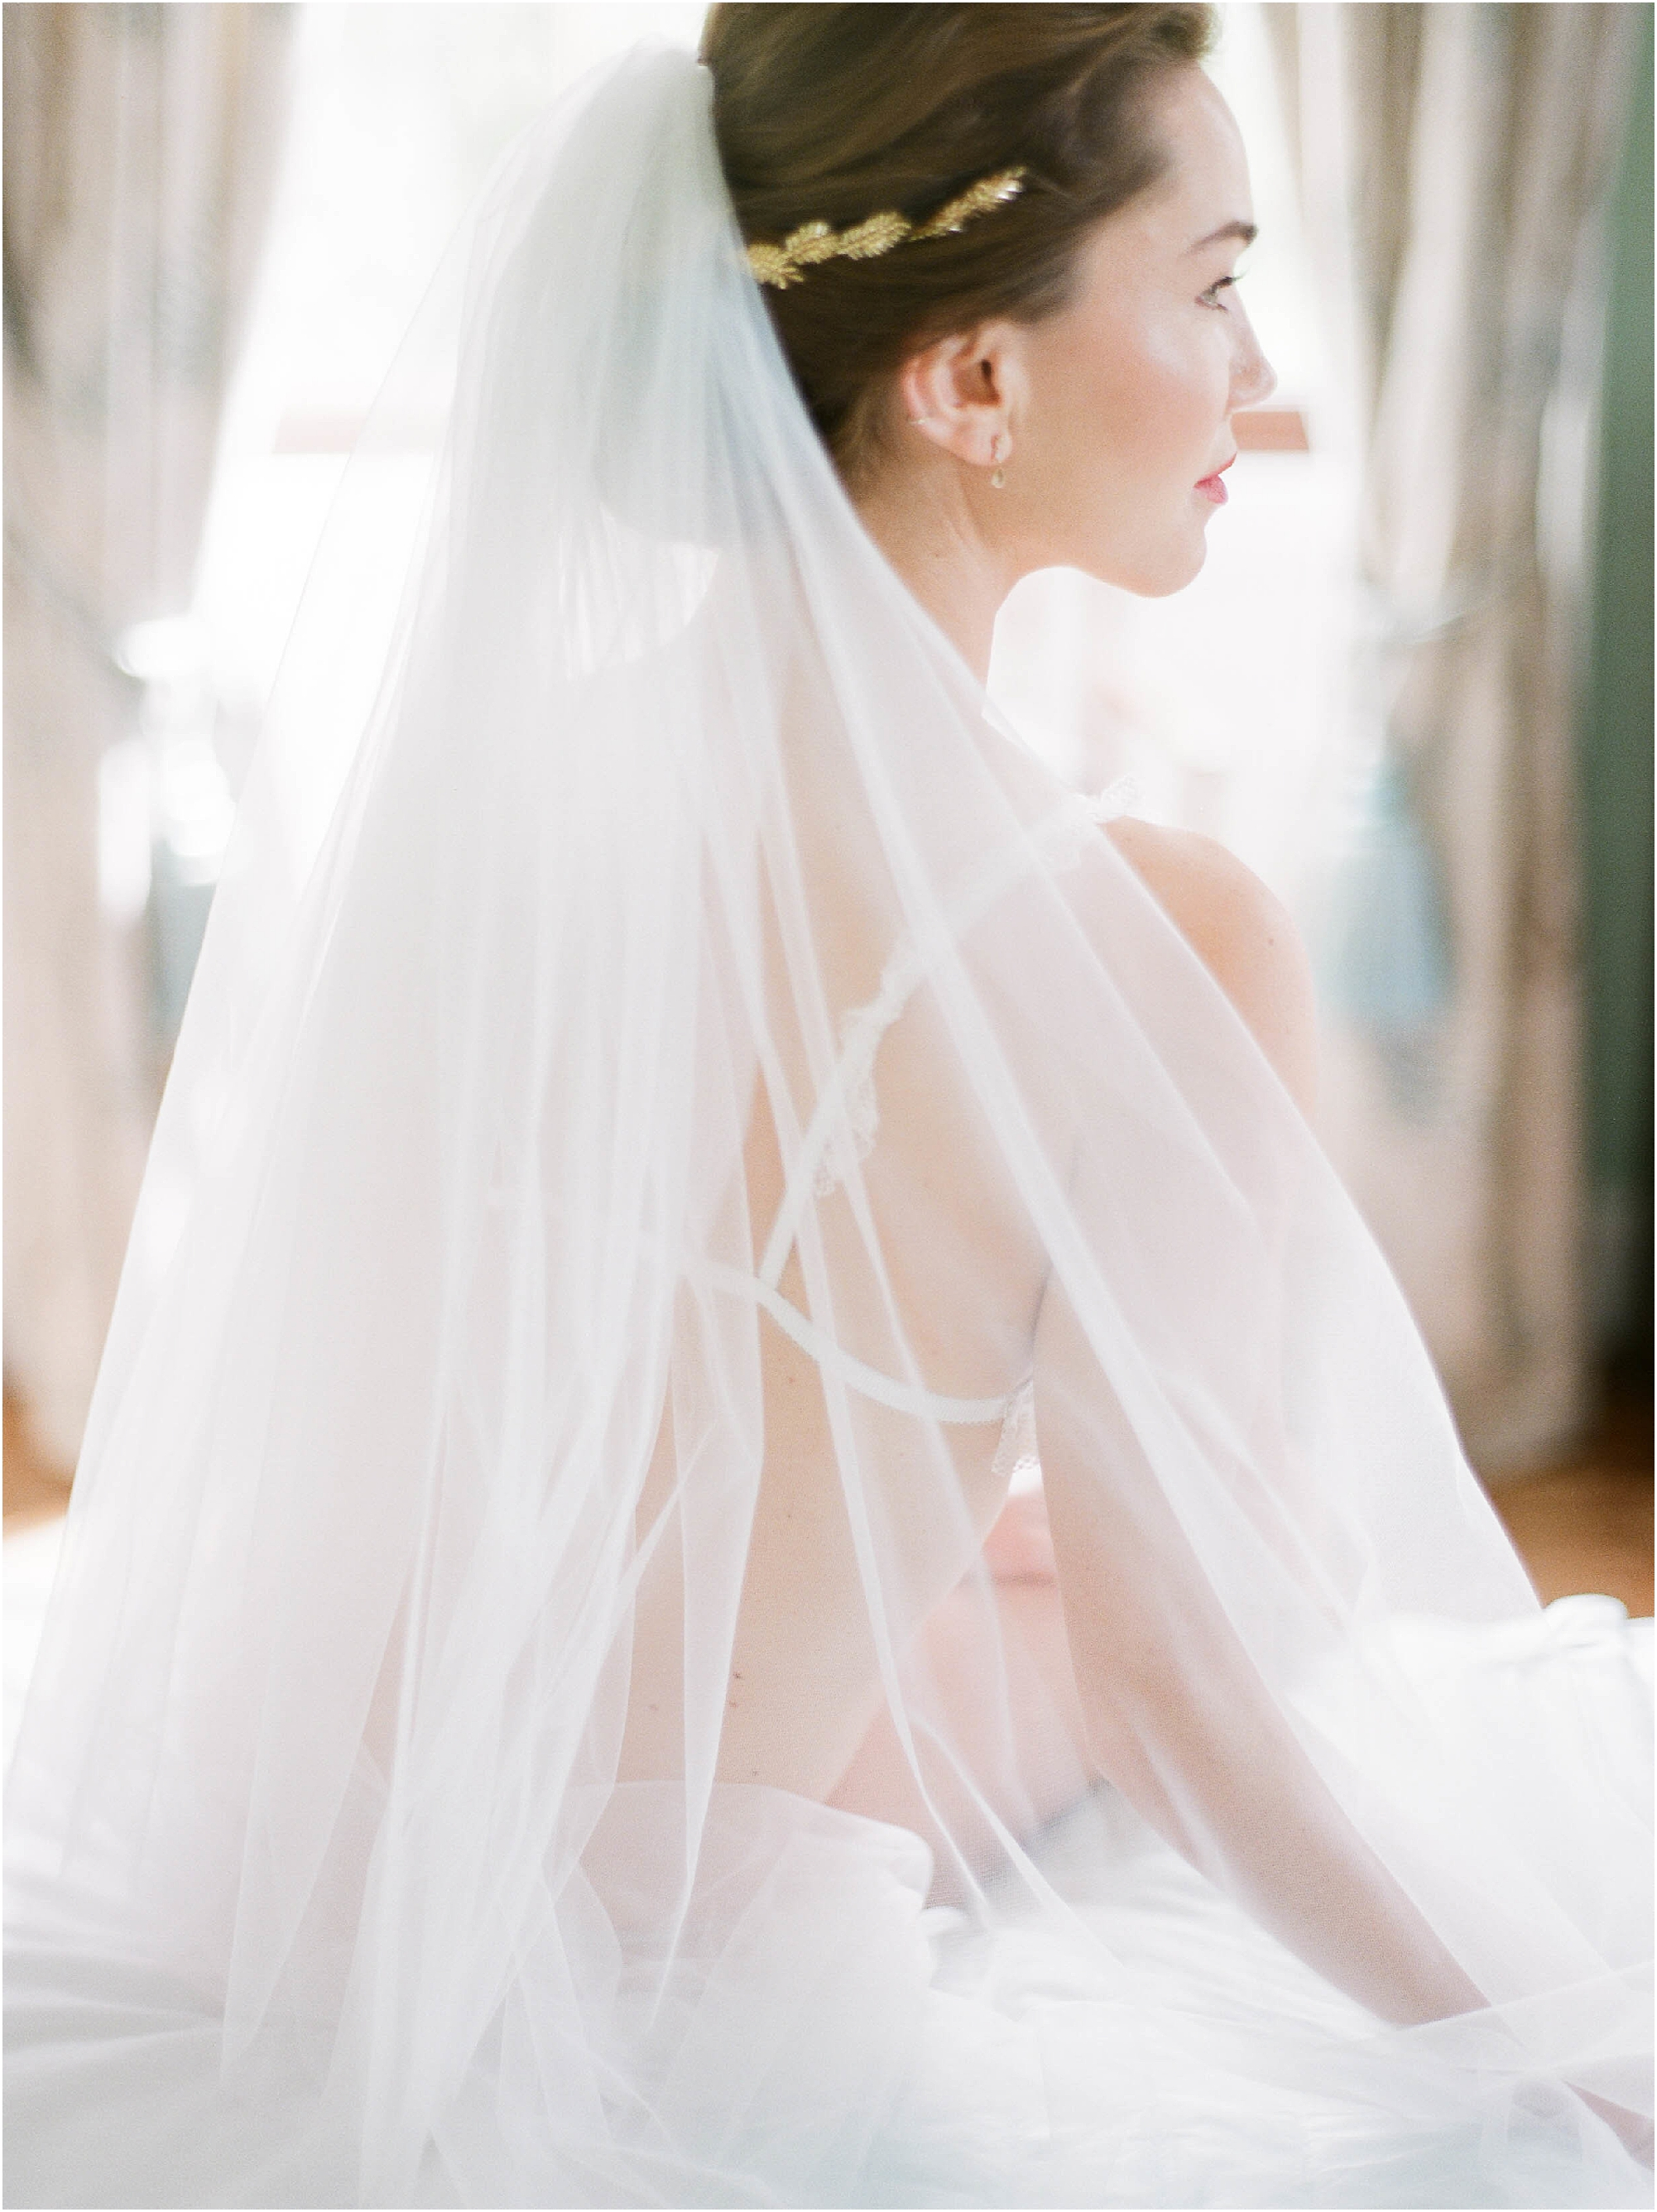 Details of veil on bride